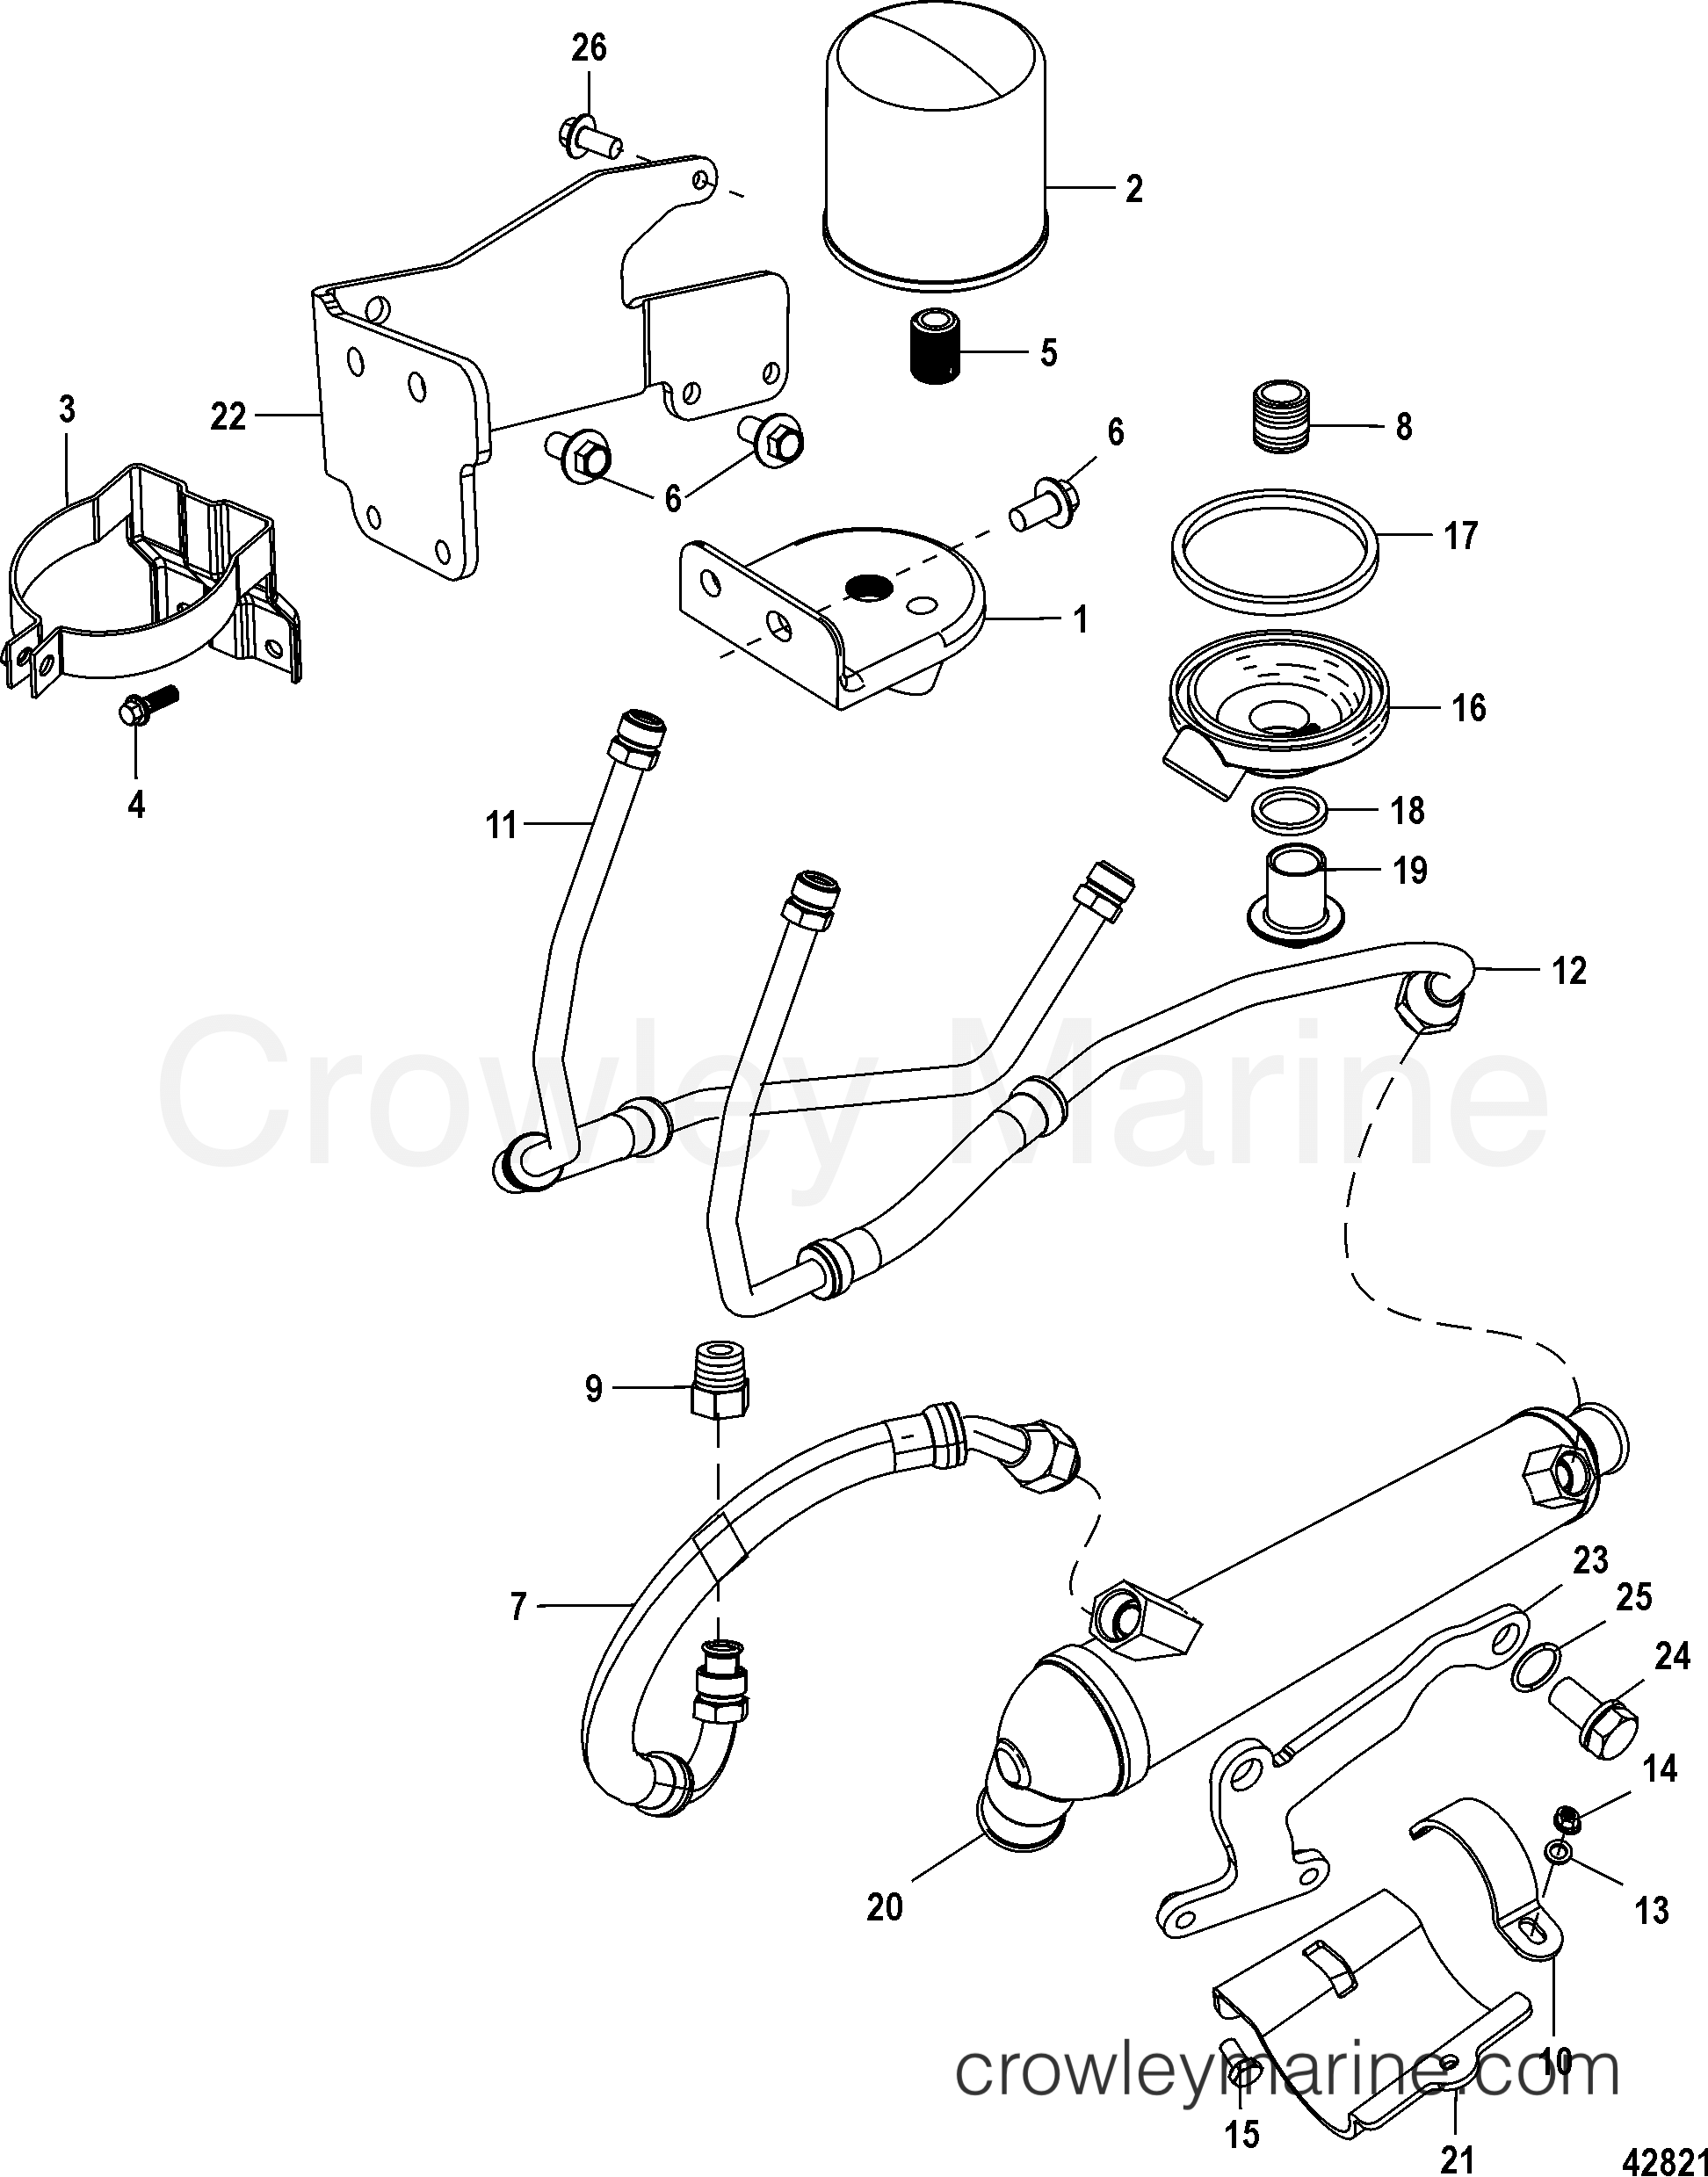 remote oil system 2a041664 below 1998 mercruiser 8 2l ho bravo Gasoline Engine Diagram 1998 mercruiser 8 2l ho bravo mpi 40820035u remote oil system